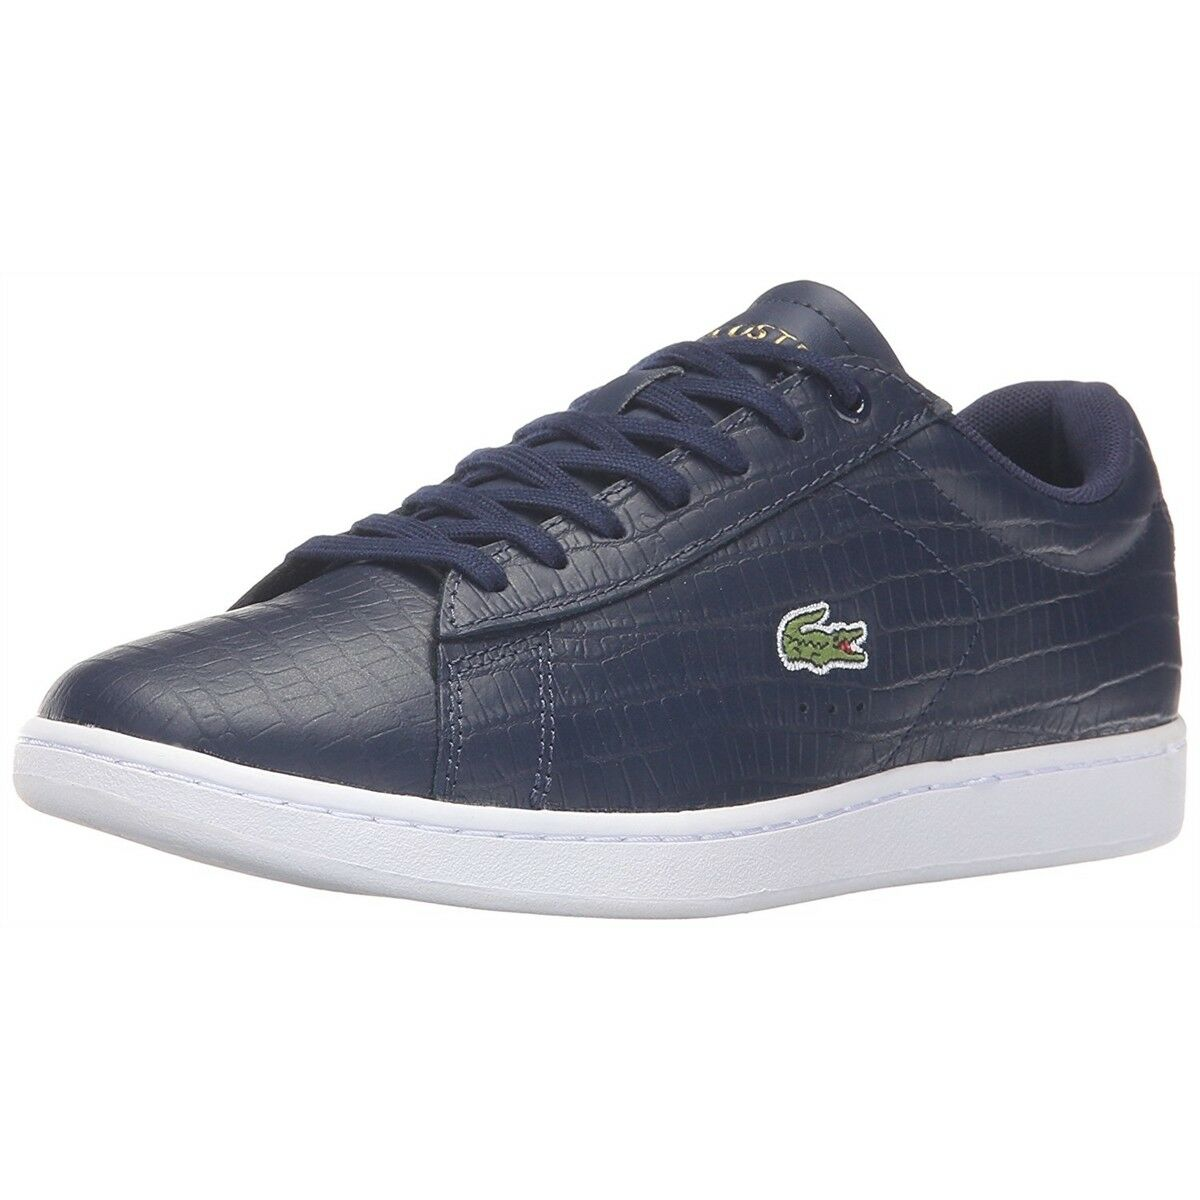 Lacoste Damens Athletic Schuhes Carnaby Evo Sneakers G316 6 Spw Fashion Sneakers Evo Navy 5672a4